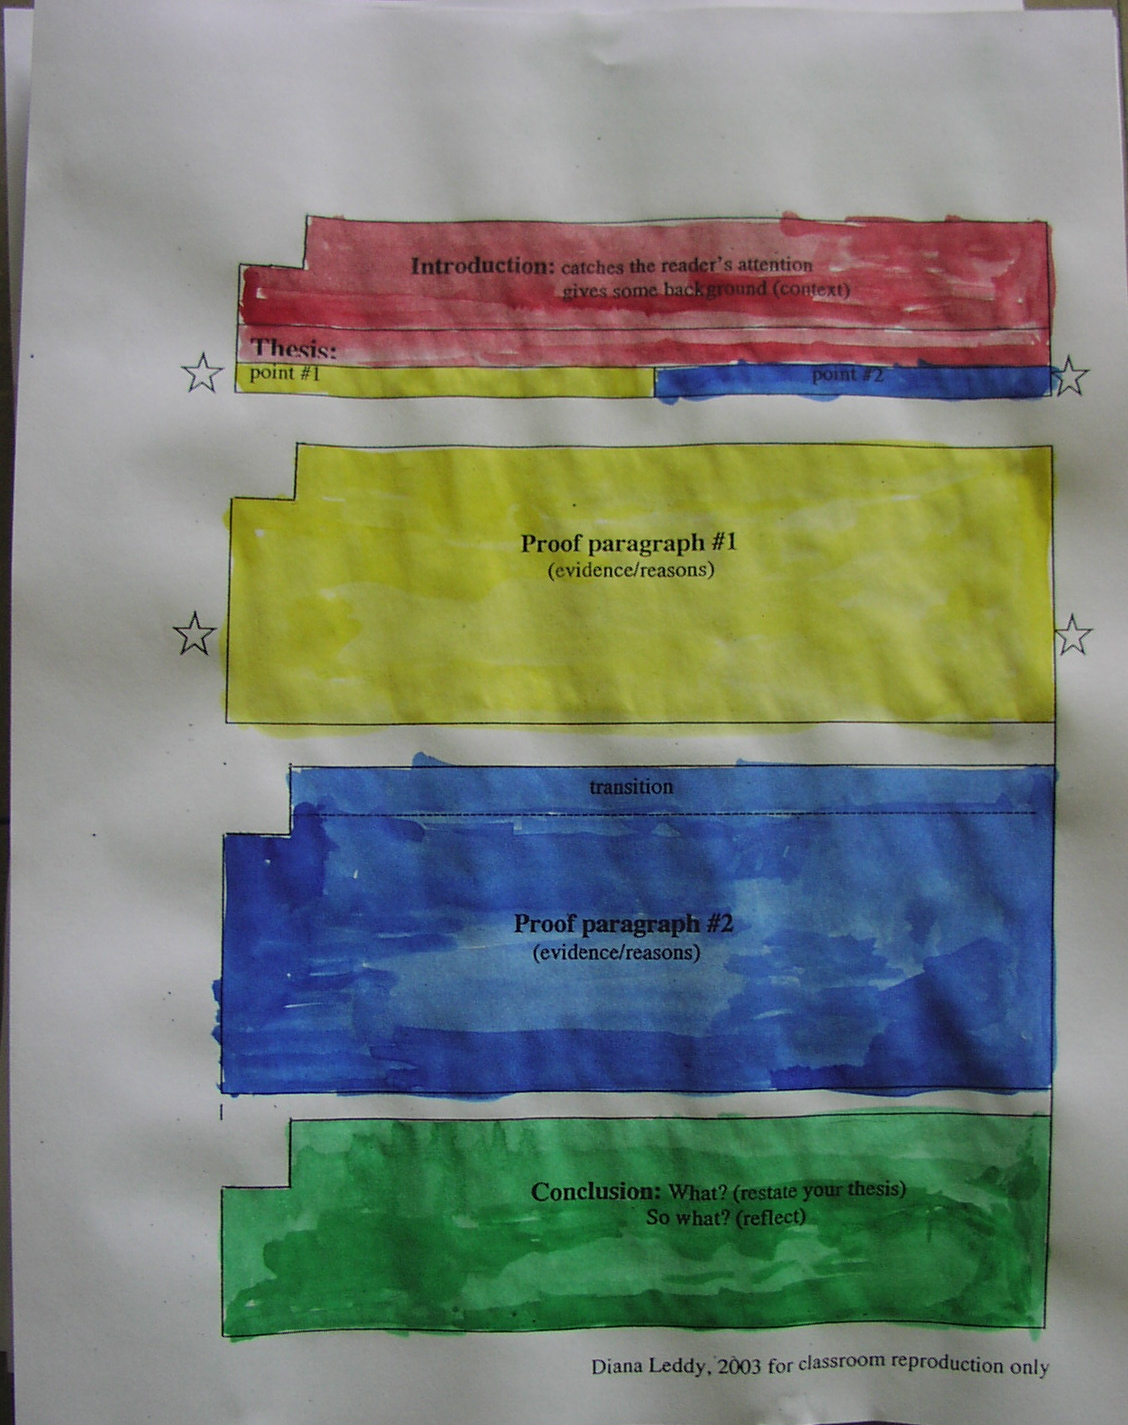 001 Essay Example P1010050 Jpg Fantastic Painted Painting Description Sample Structure